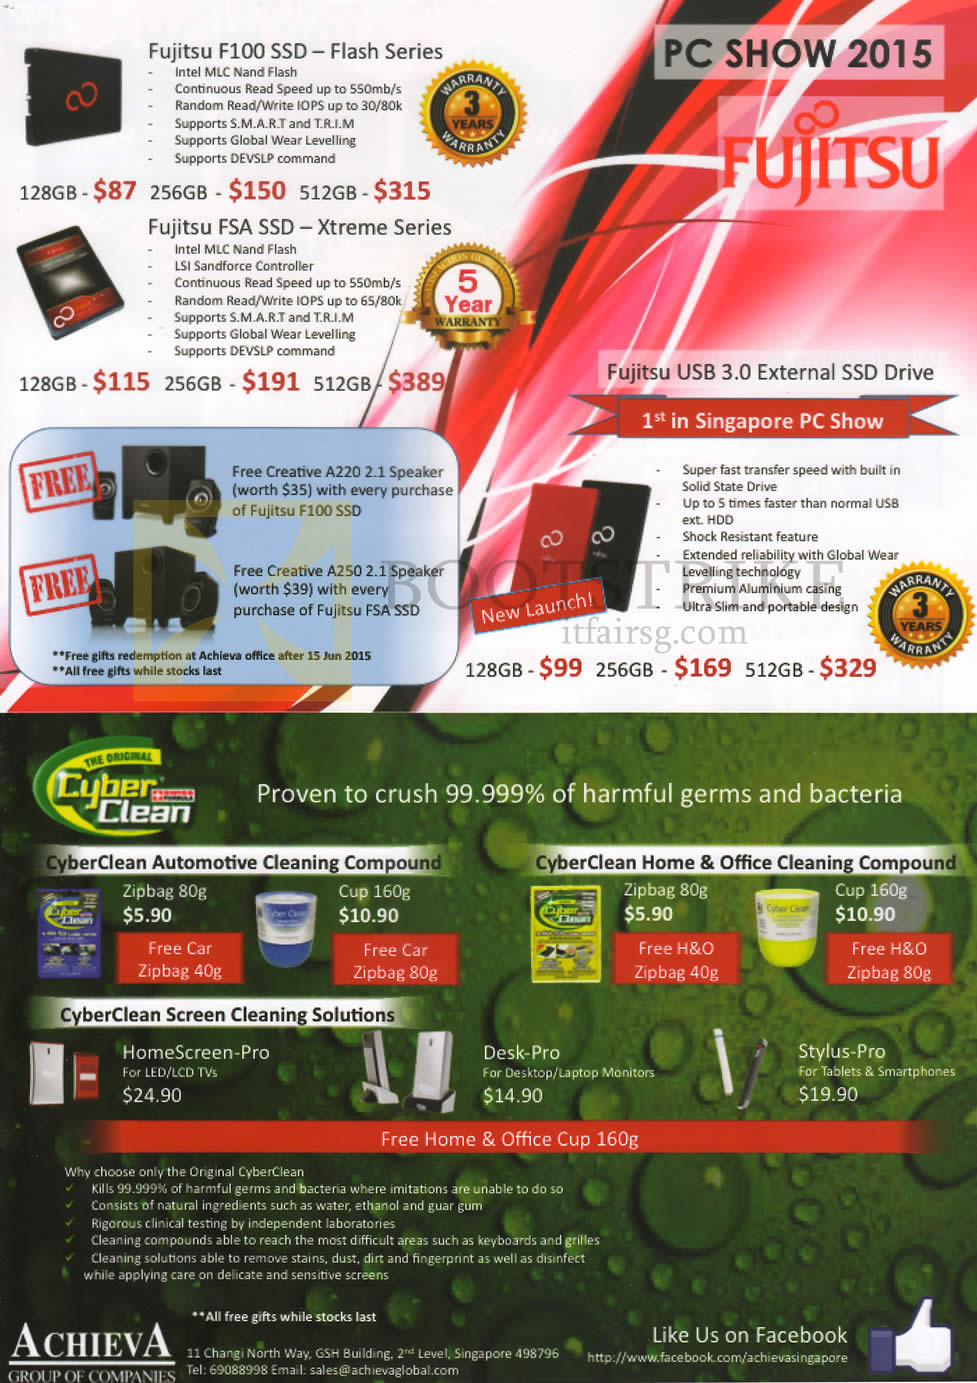 PC SHOW 2015 price list image brochure of Achieva Fujitsu SSD, Speakers, Cyberclean Cleaning Compounds, Fujitsu F100, FSA SSD